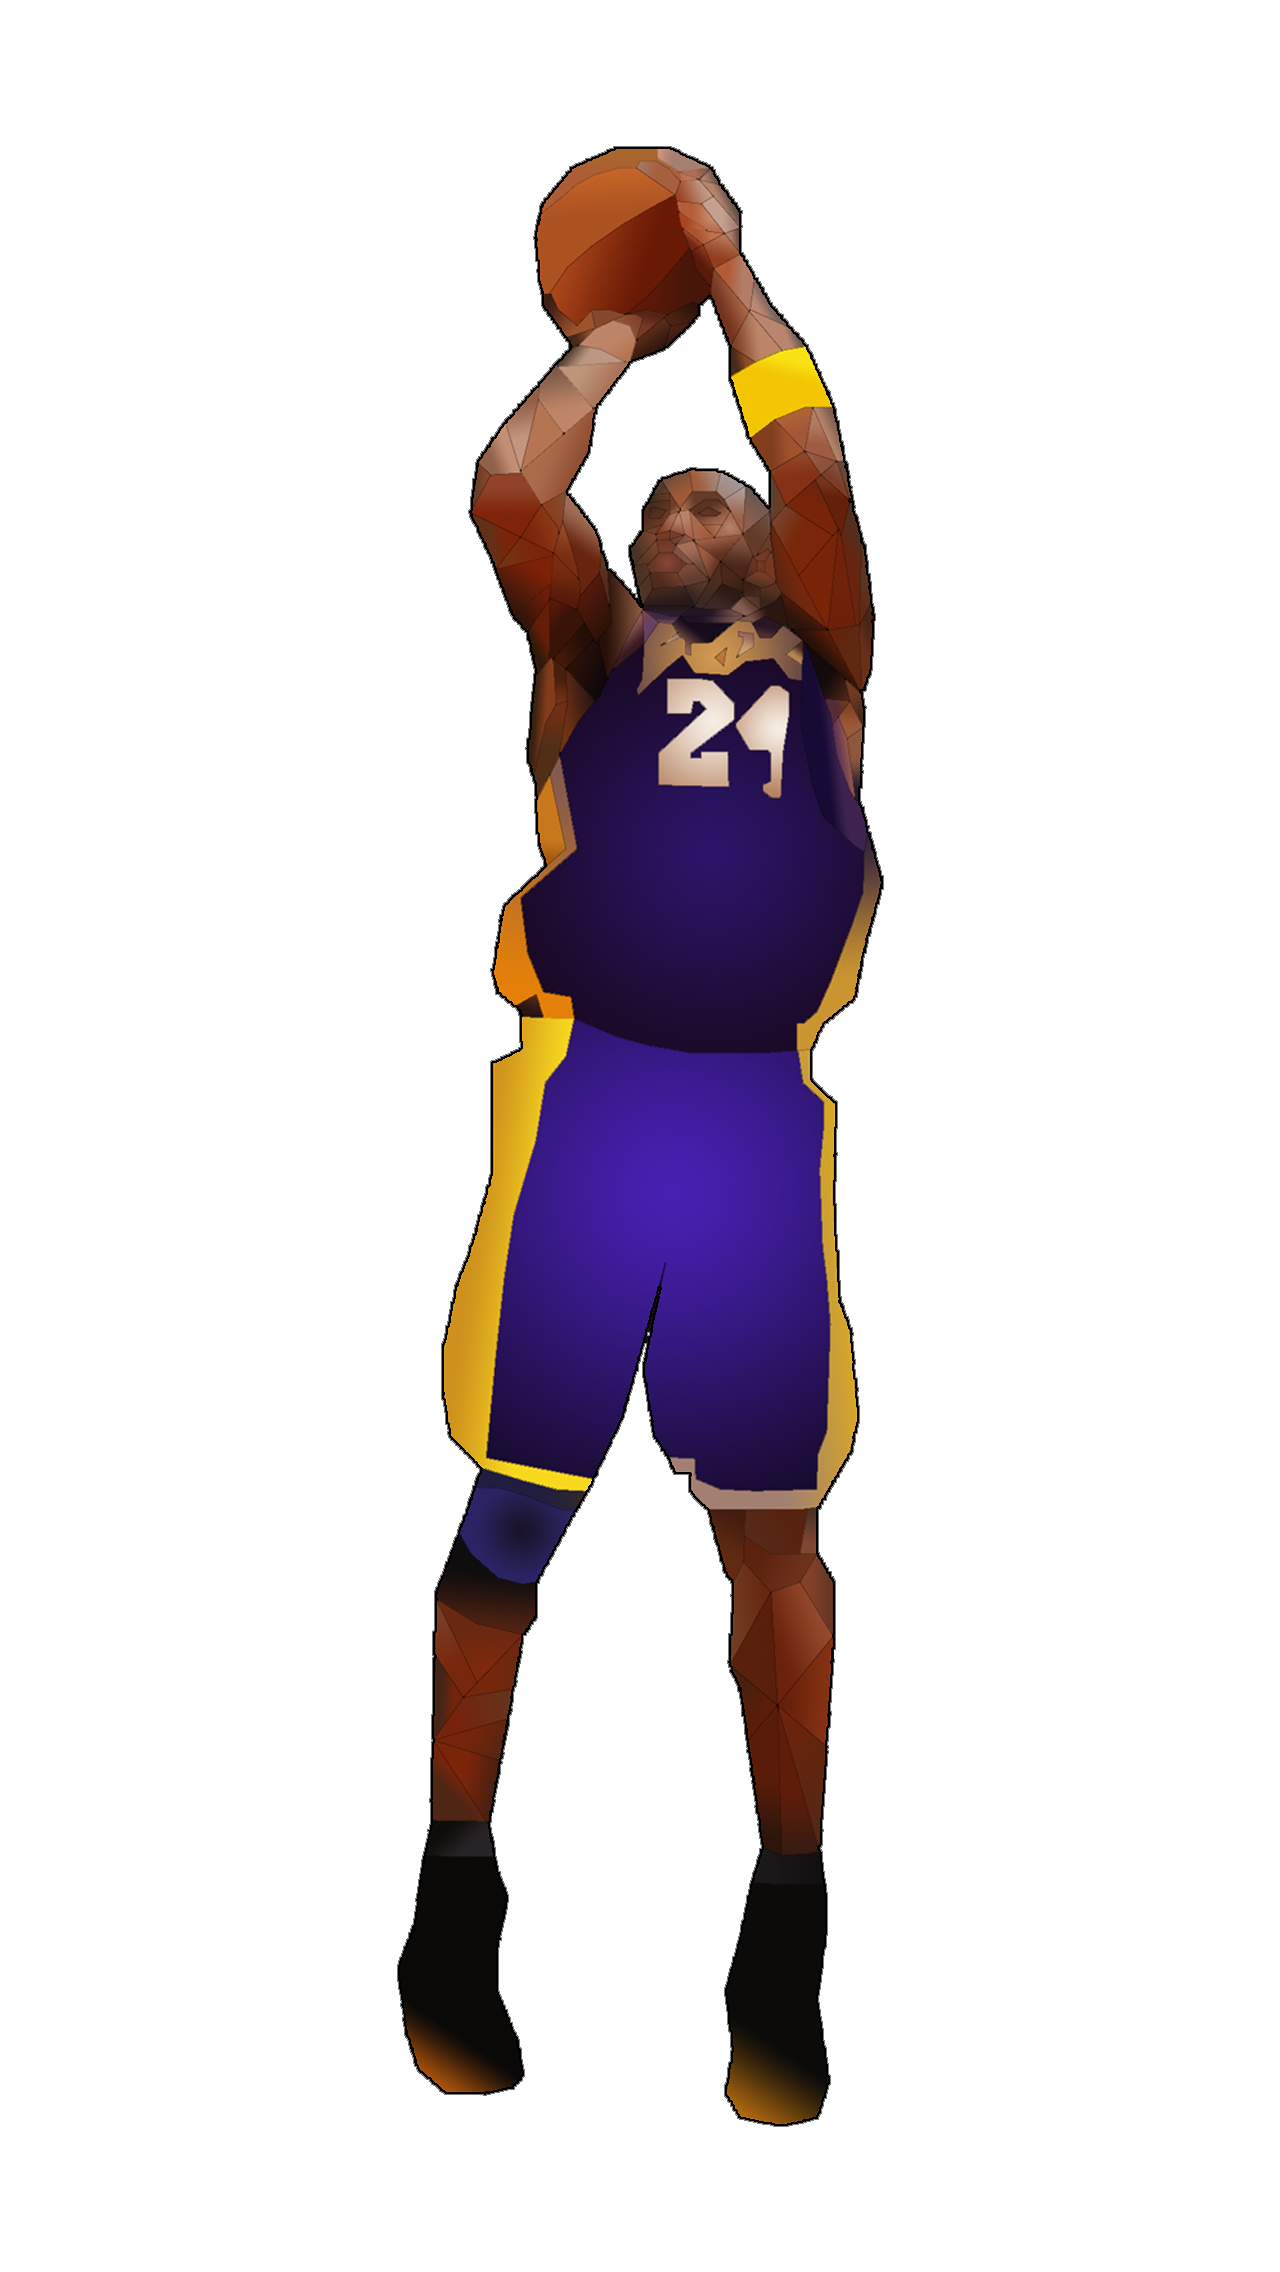 Low-poly render of Kobe Bryant made Summer '14 in Adobe Illustrator and Photoshop